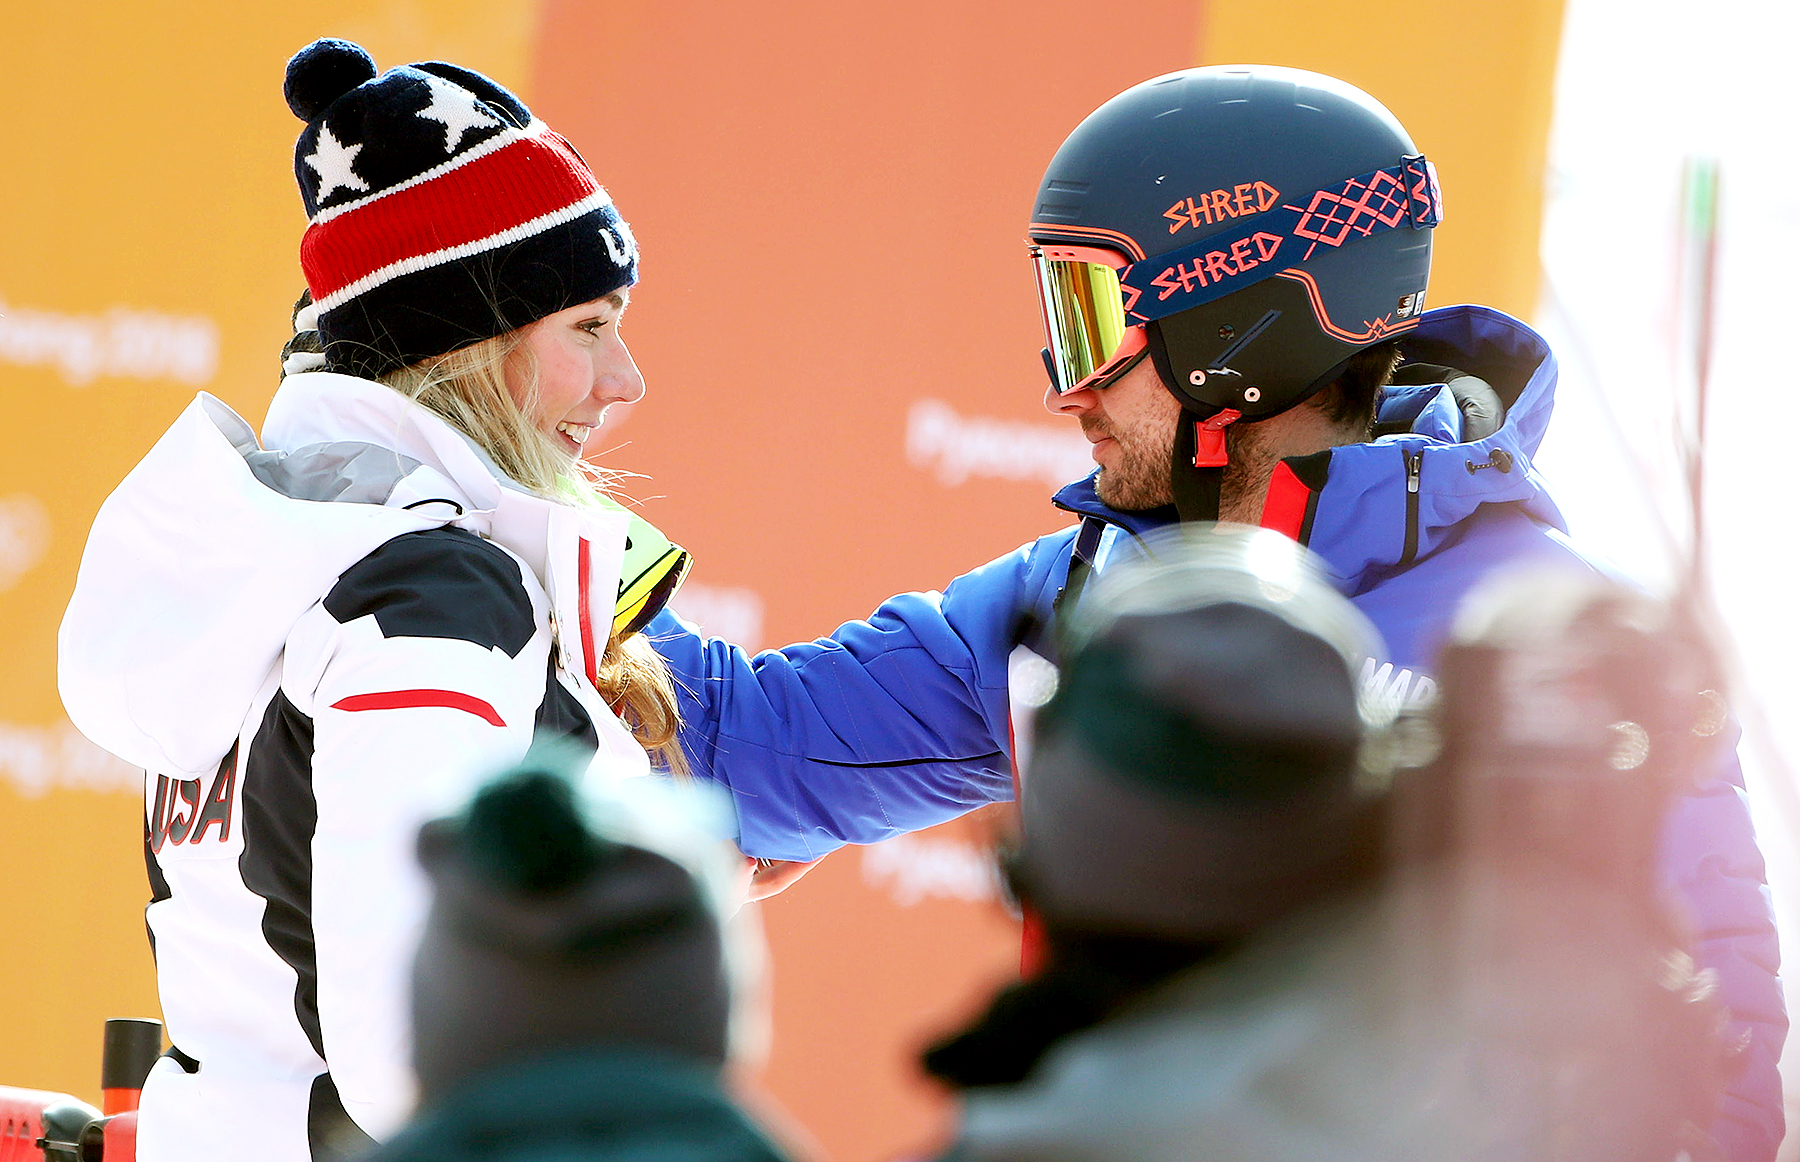 Mikaela Shiffrin's boyfriend sent home after ripping his team